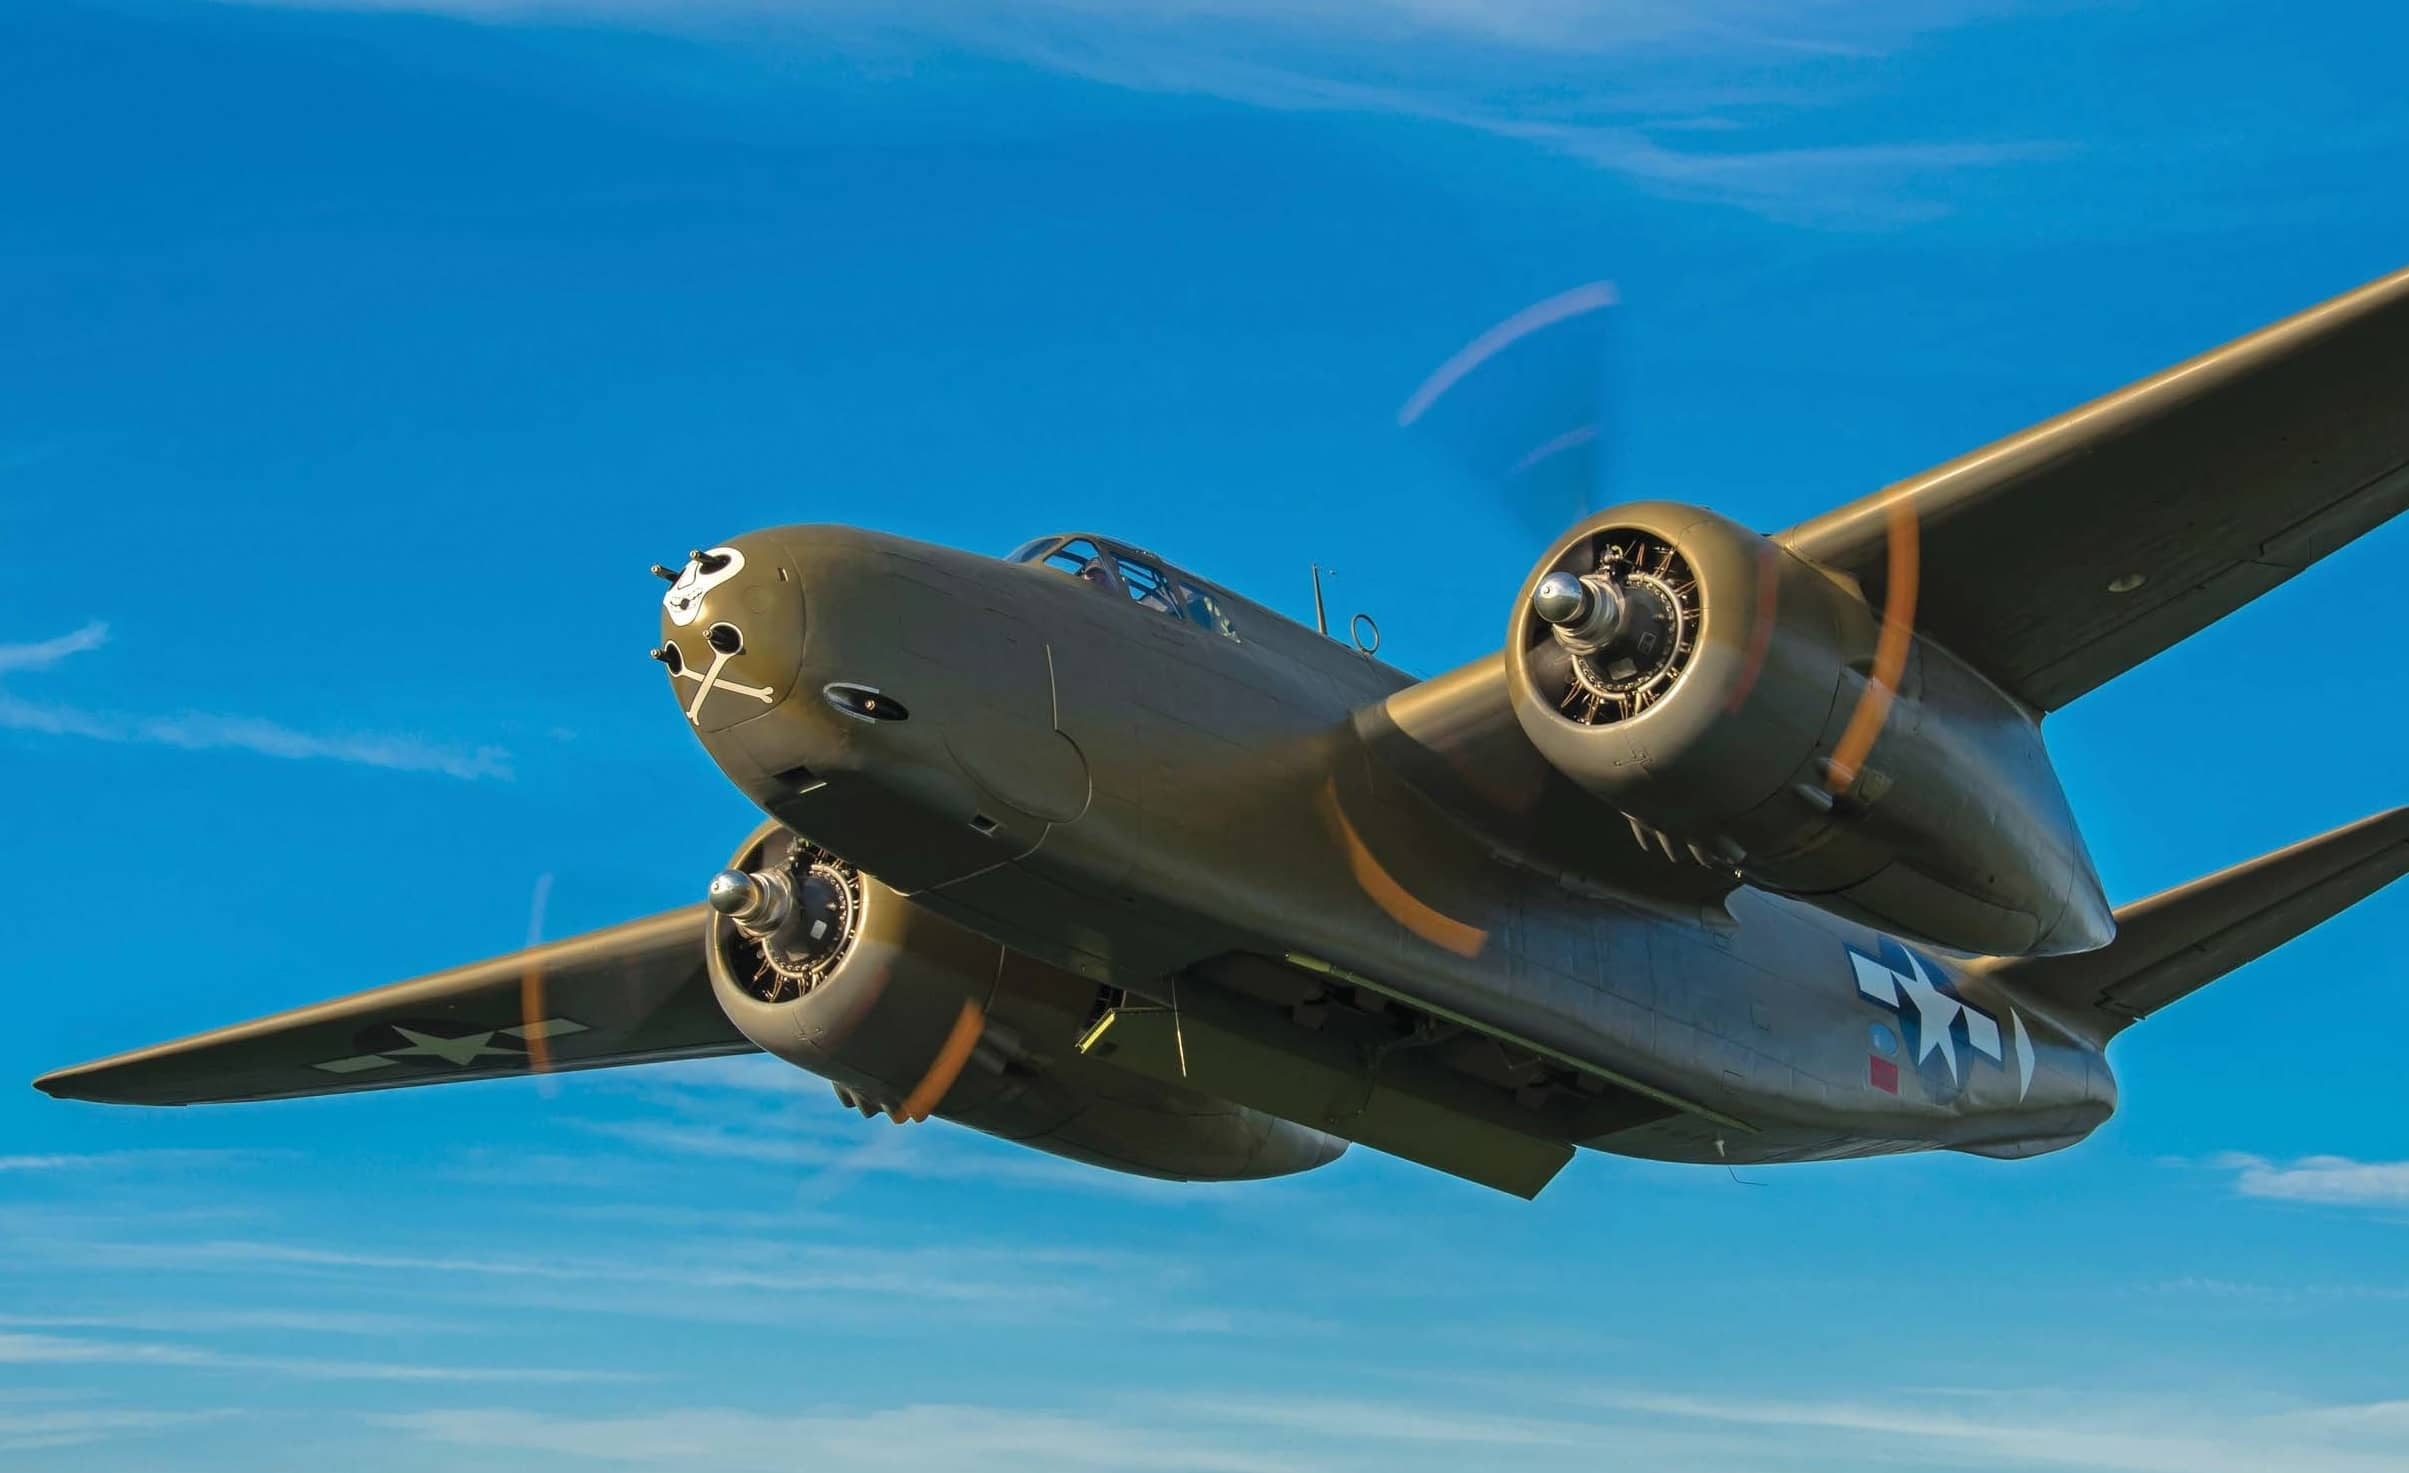 The A-20 Havoc Story - An Unknown Warrior